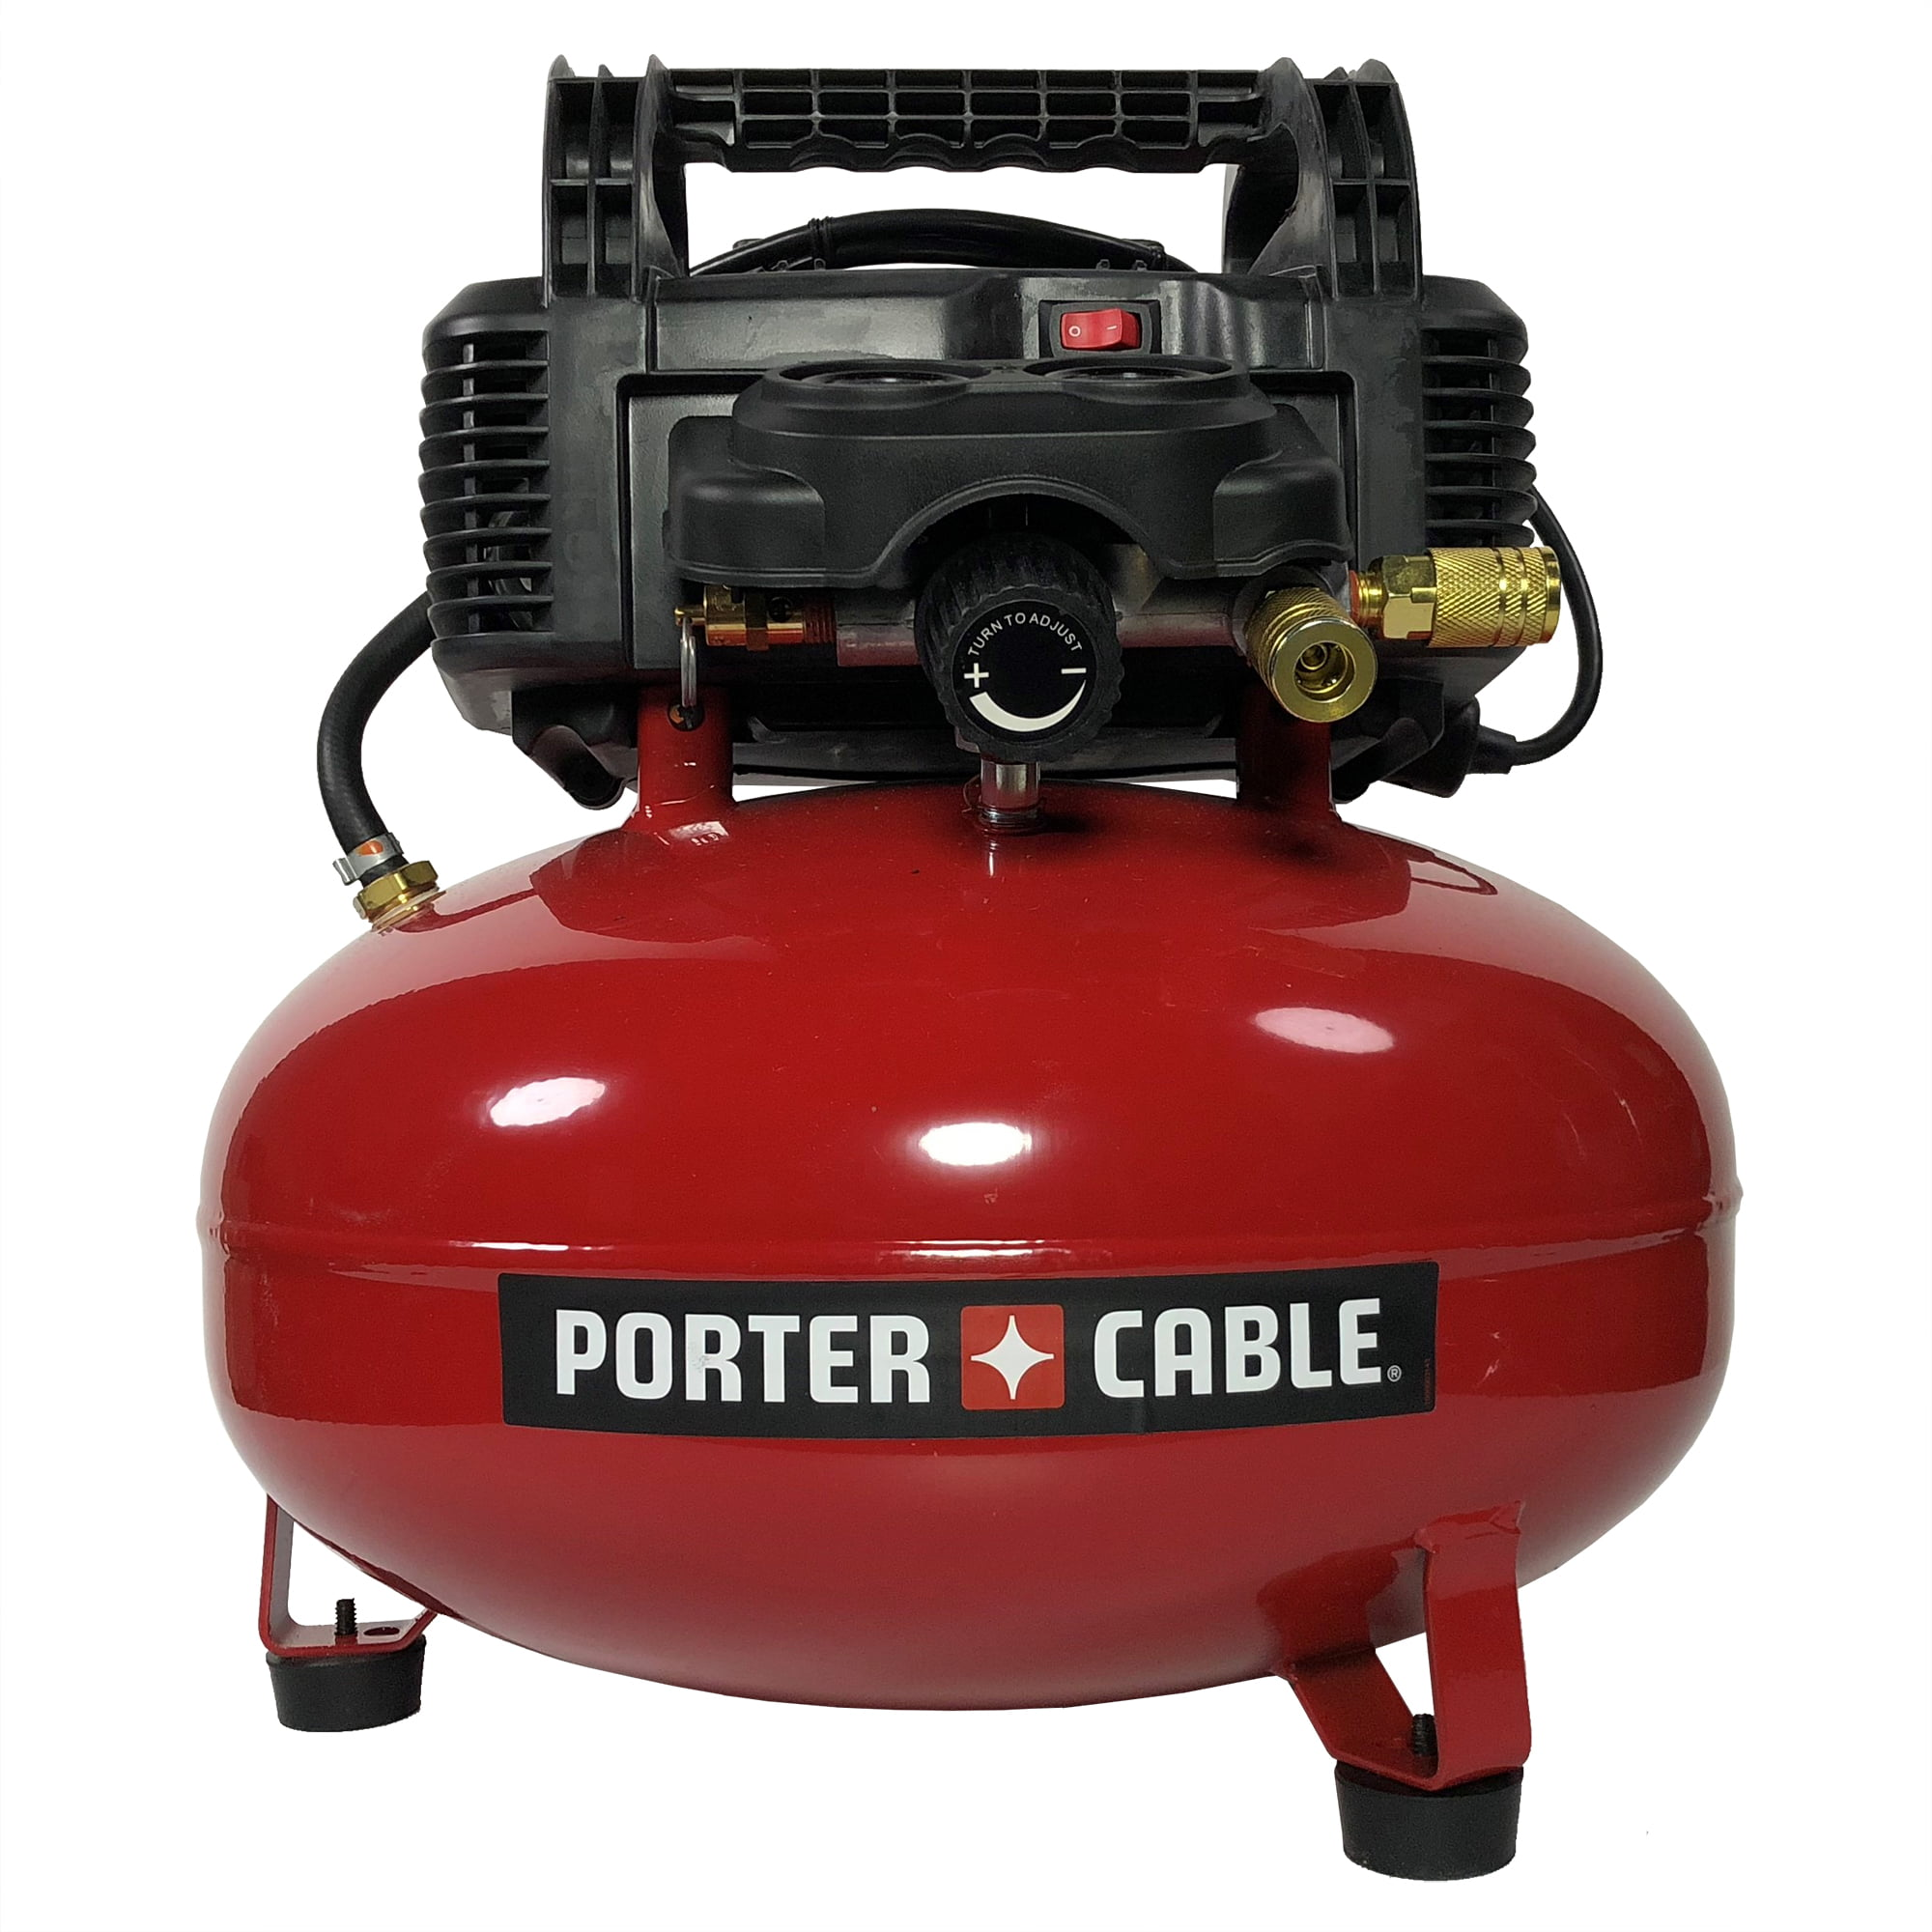 Porter-Cable C2002 6-Gallon Pancake Compressor by Porter Cable